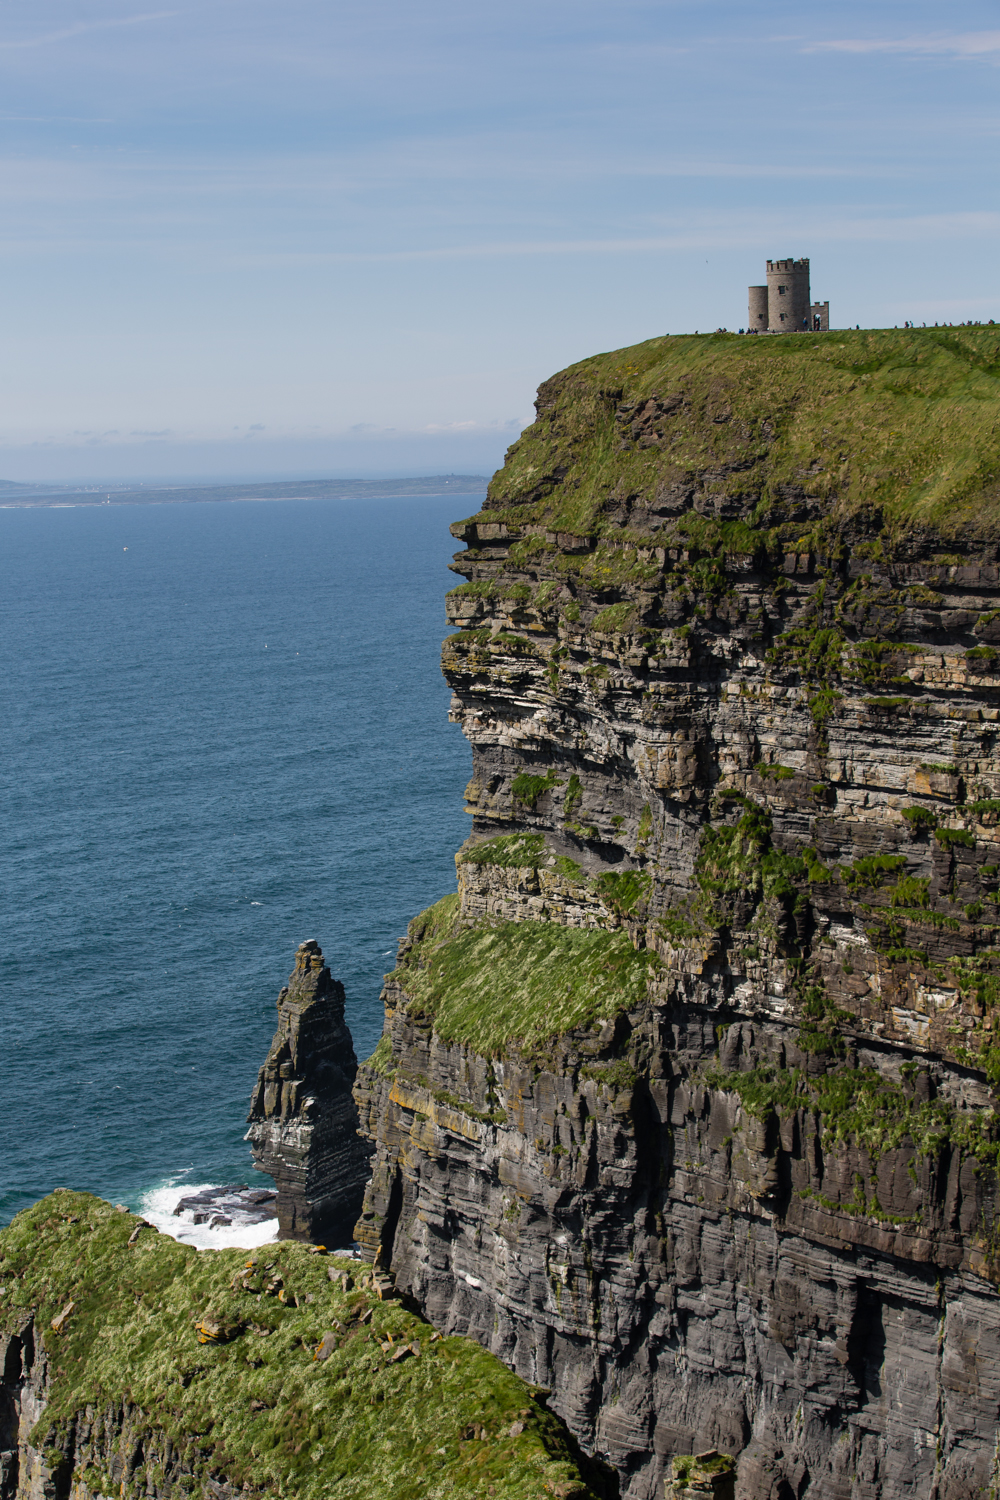 Another view of the cliffs, The Stack and O'Briens Tower.